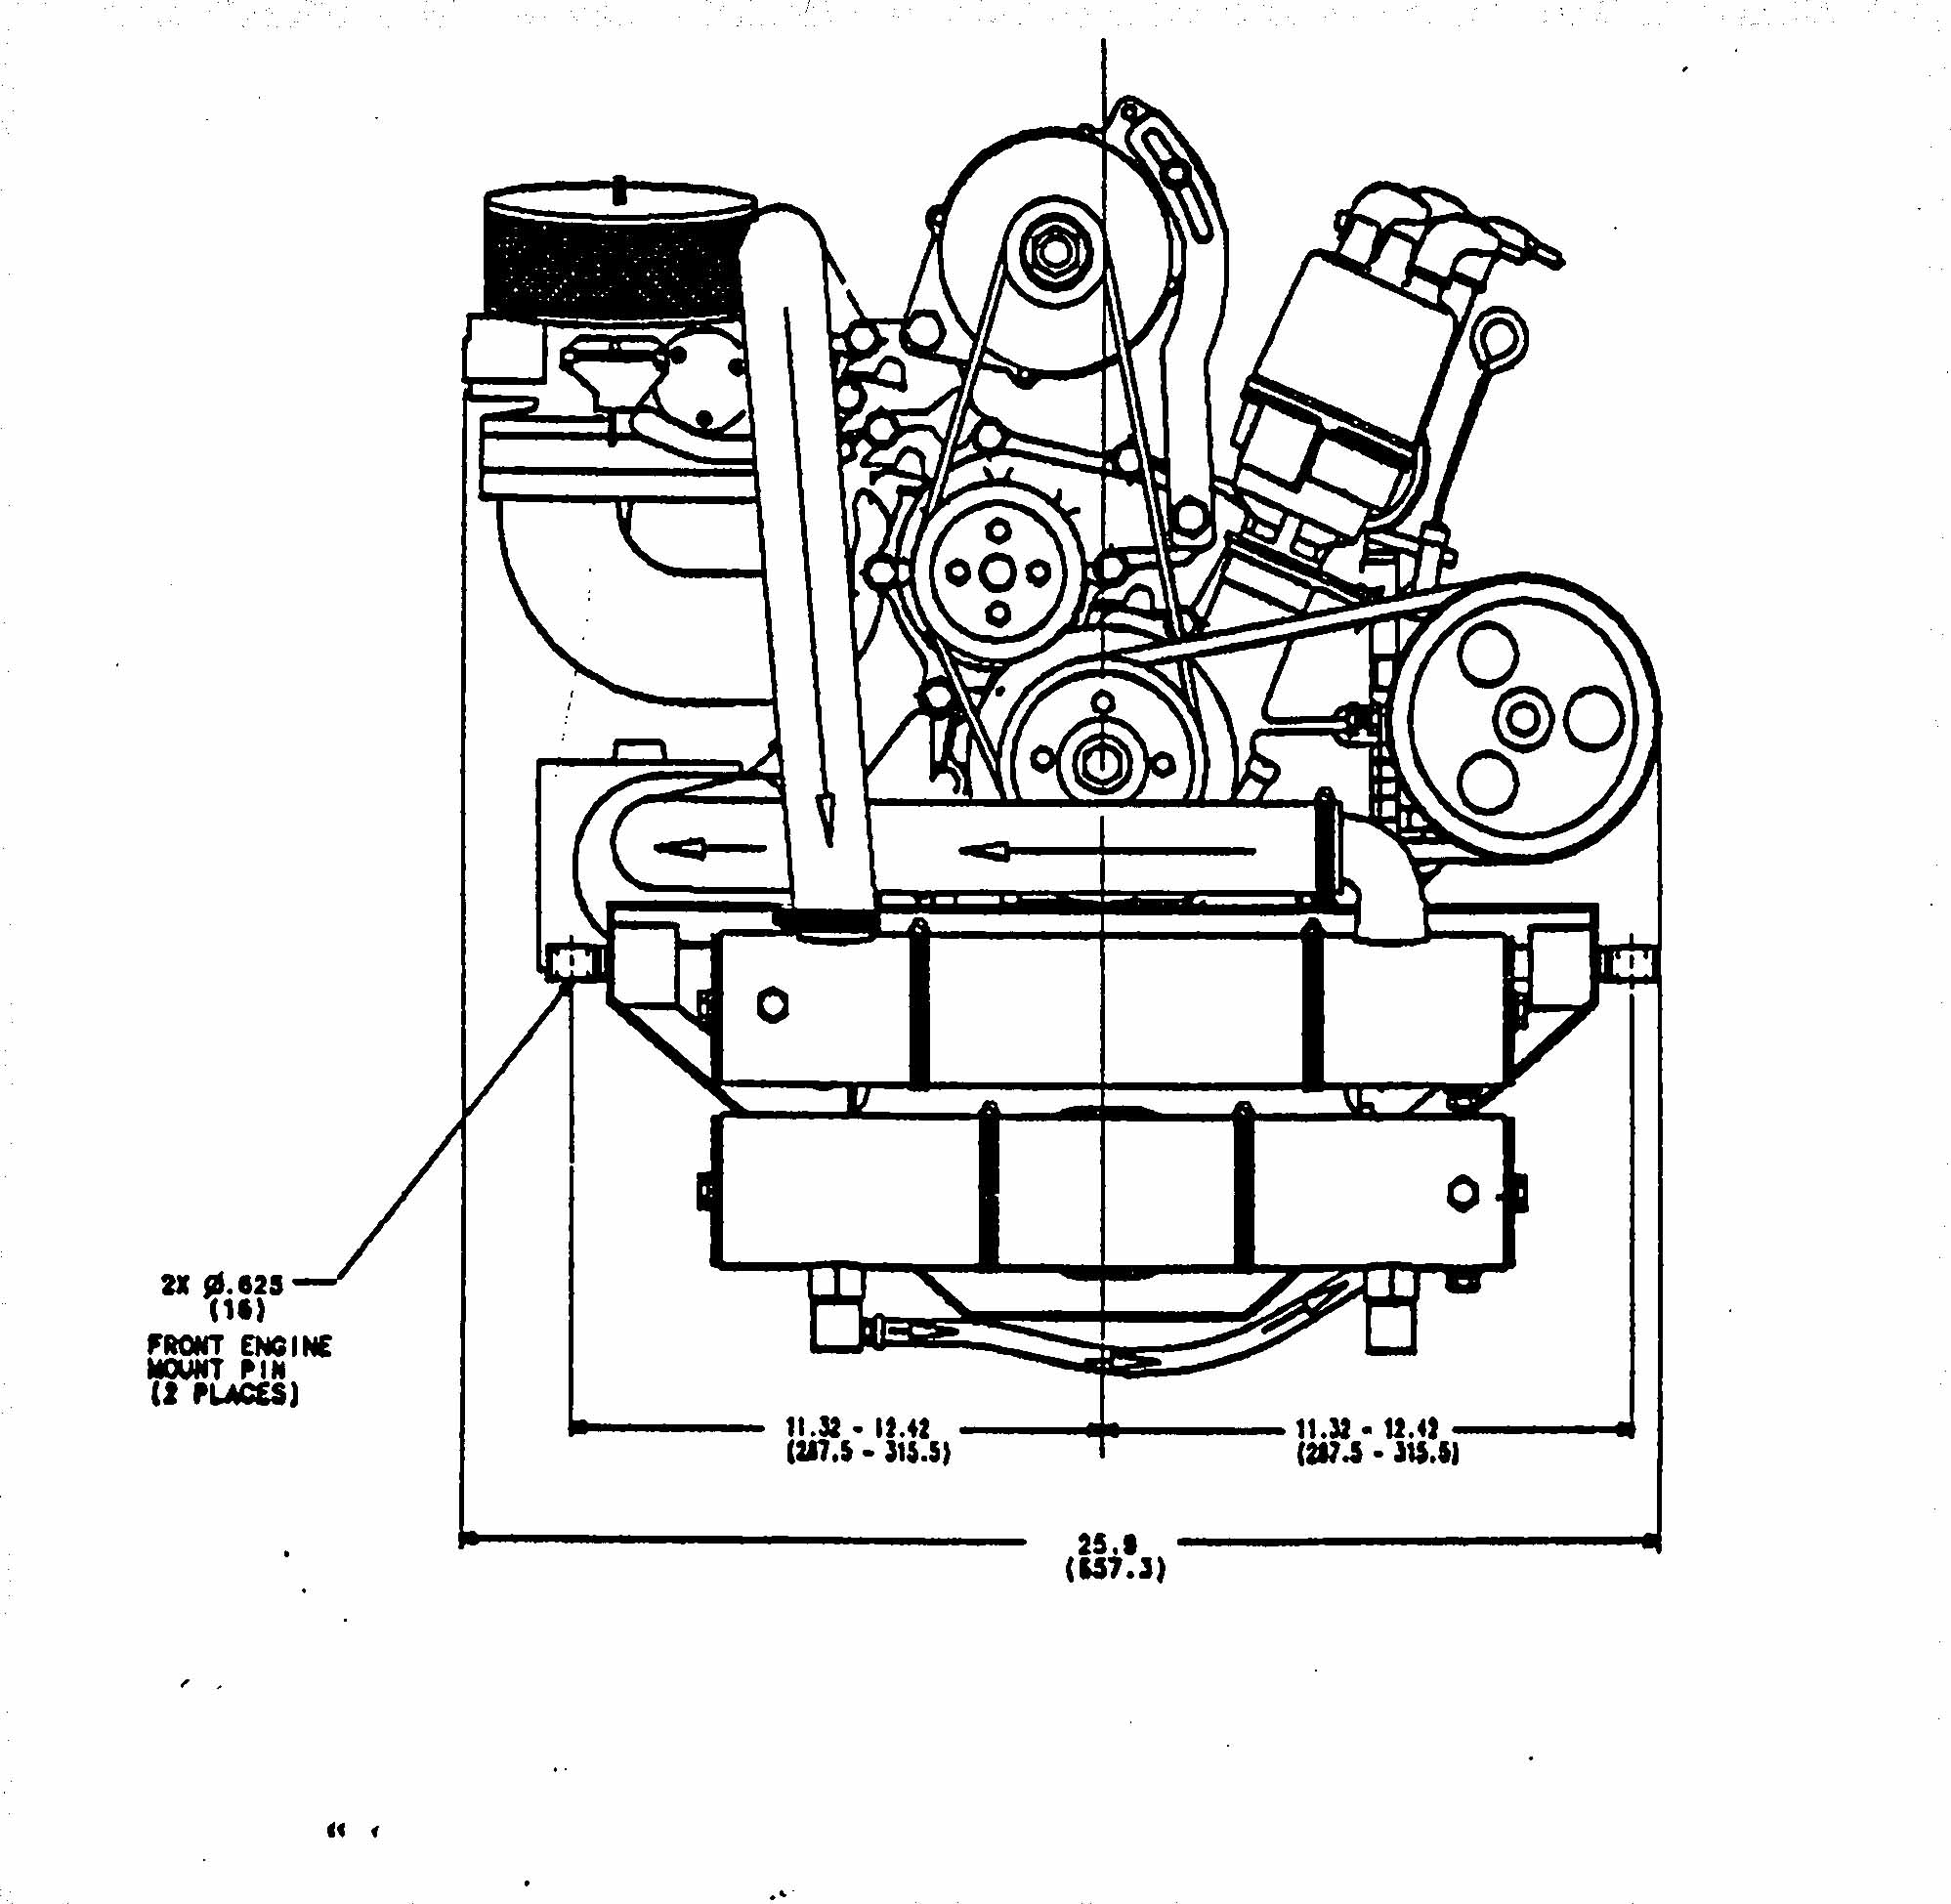 Auto Engine Diagram moreover Mazda Rx 7 Rotary Engine Diagram also Mazda Engine Diagram further Honda Foreman Rubicon Wiring Diagram further Mazda Mpv Engine Diagram Exploded. on patent diagrams mazda direct injection rotary engine